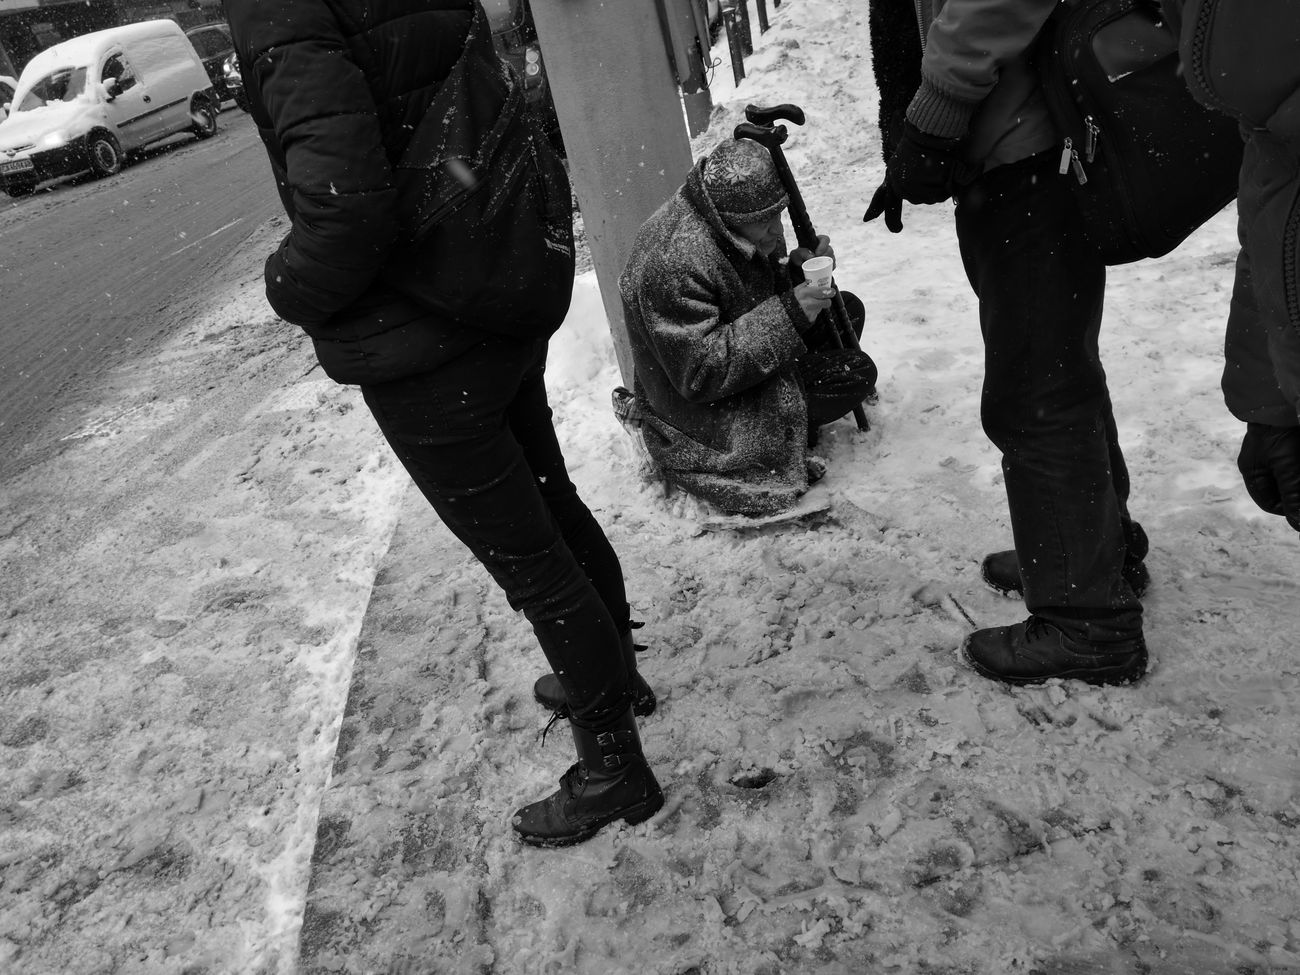 'At one with fear, Careless if you fall, Beneath the earth, Your heart may feel the call' - Adapted To The City Leica Real People Monochrome Photography Leica P9 Blackandwhite Monochrome фотография Street Photography Huawei P9 Leica HuaweiP9 Streetphoto Black&white Black And White Photography Black & White Leica Photography Leica Lens Misery Homeless Homelessman Streetphotography Street Leica Black And White Leicap9 чернобелое